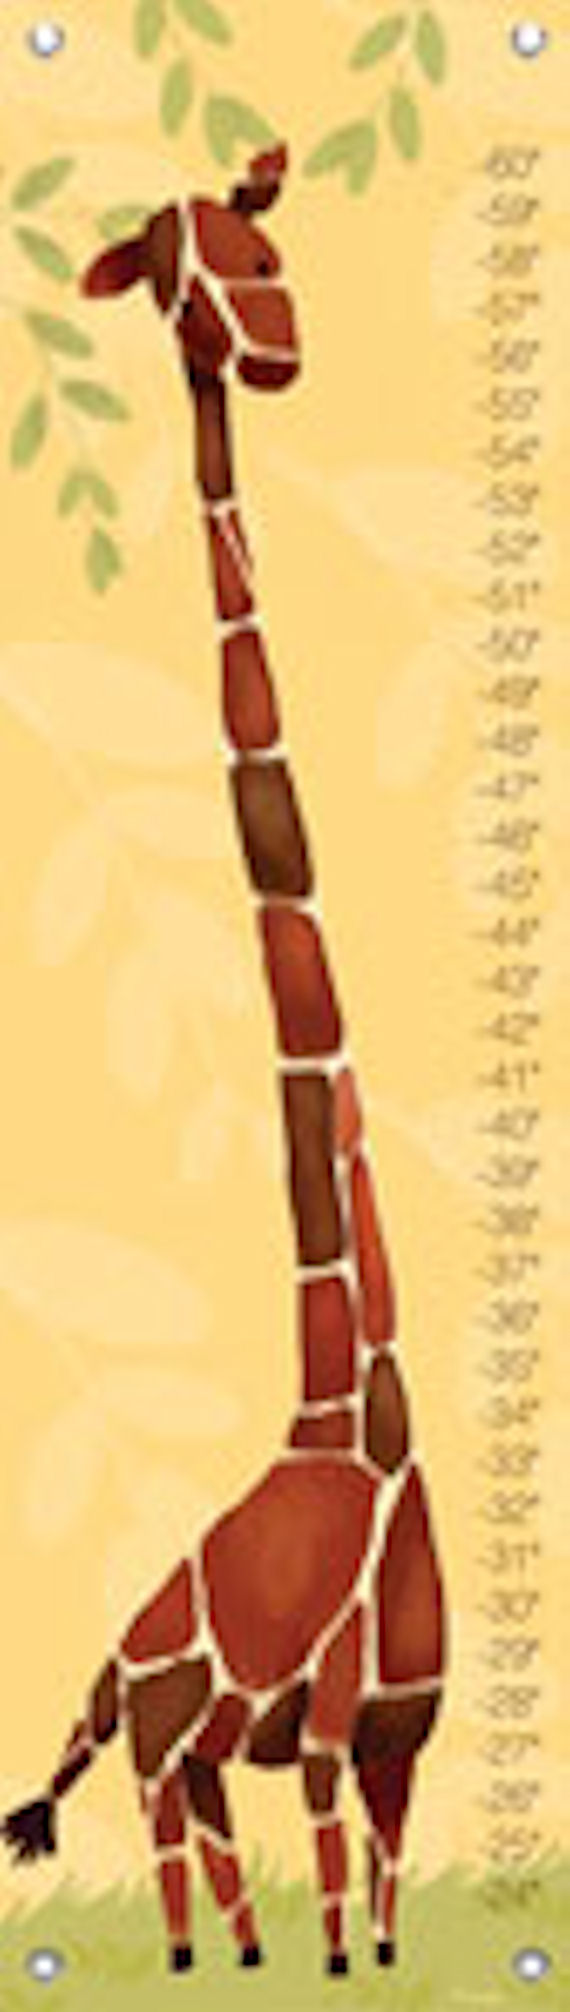 Gillespie giraffe growth chart multiple colors the frog and the gillespie giraffe growth chart multiple colors nvjuhfo Image collections